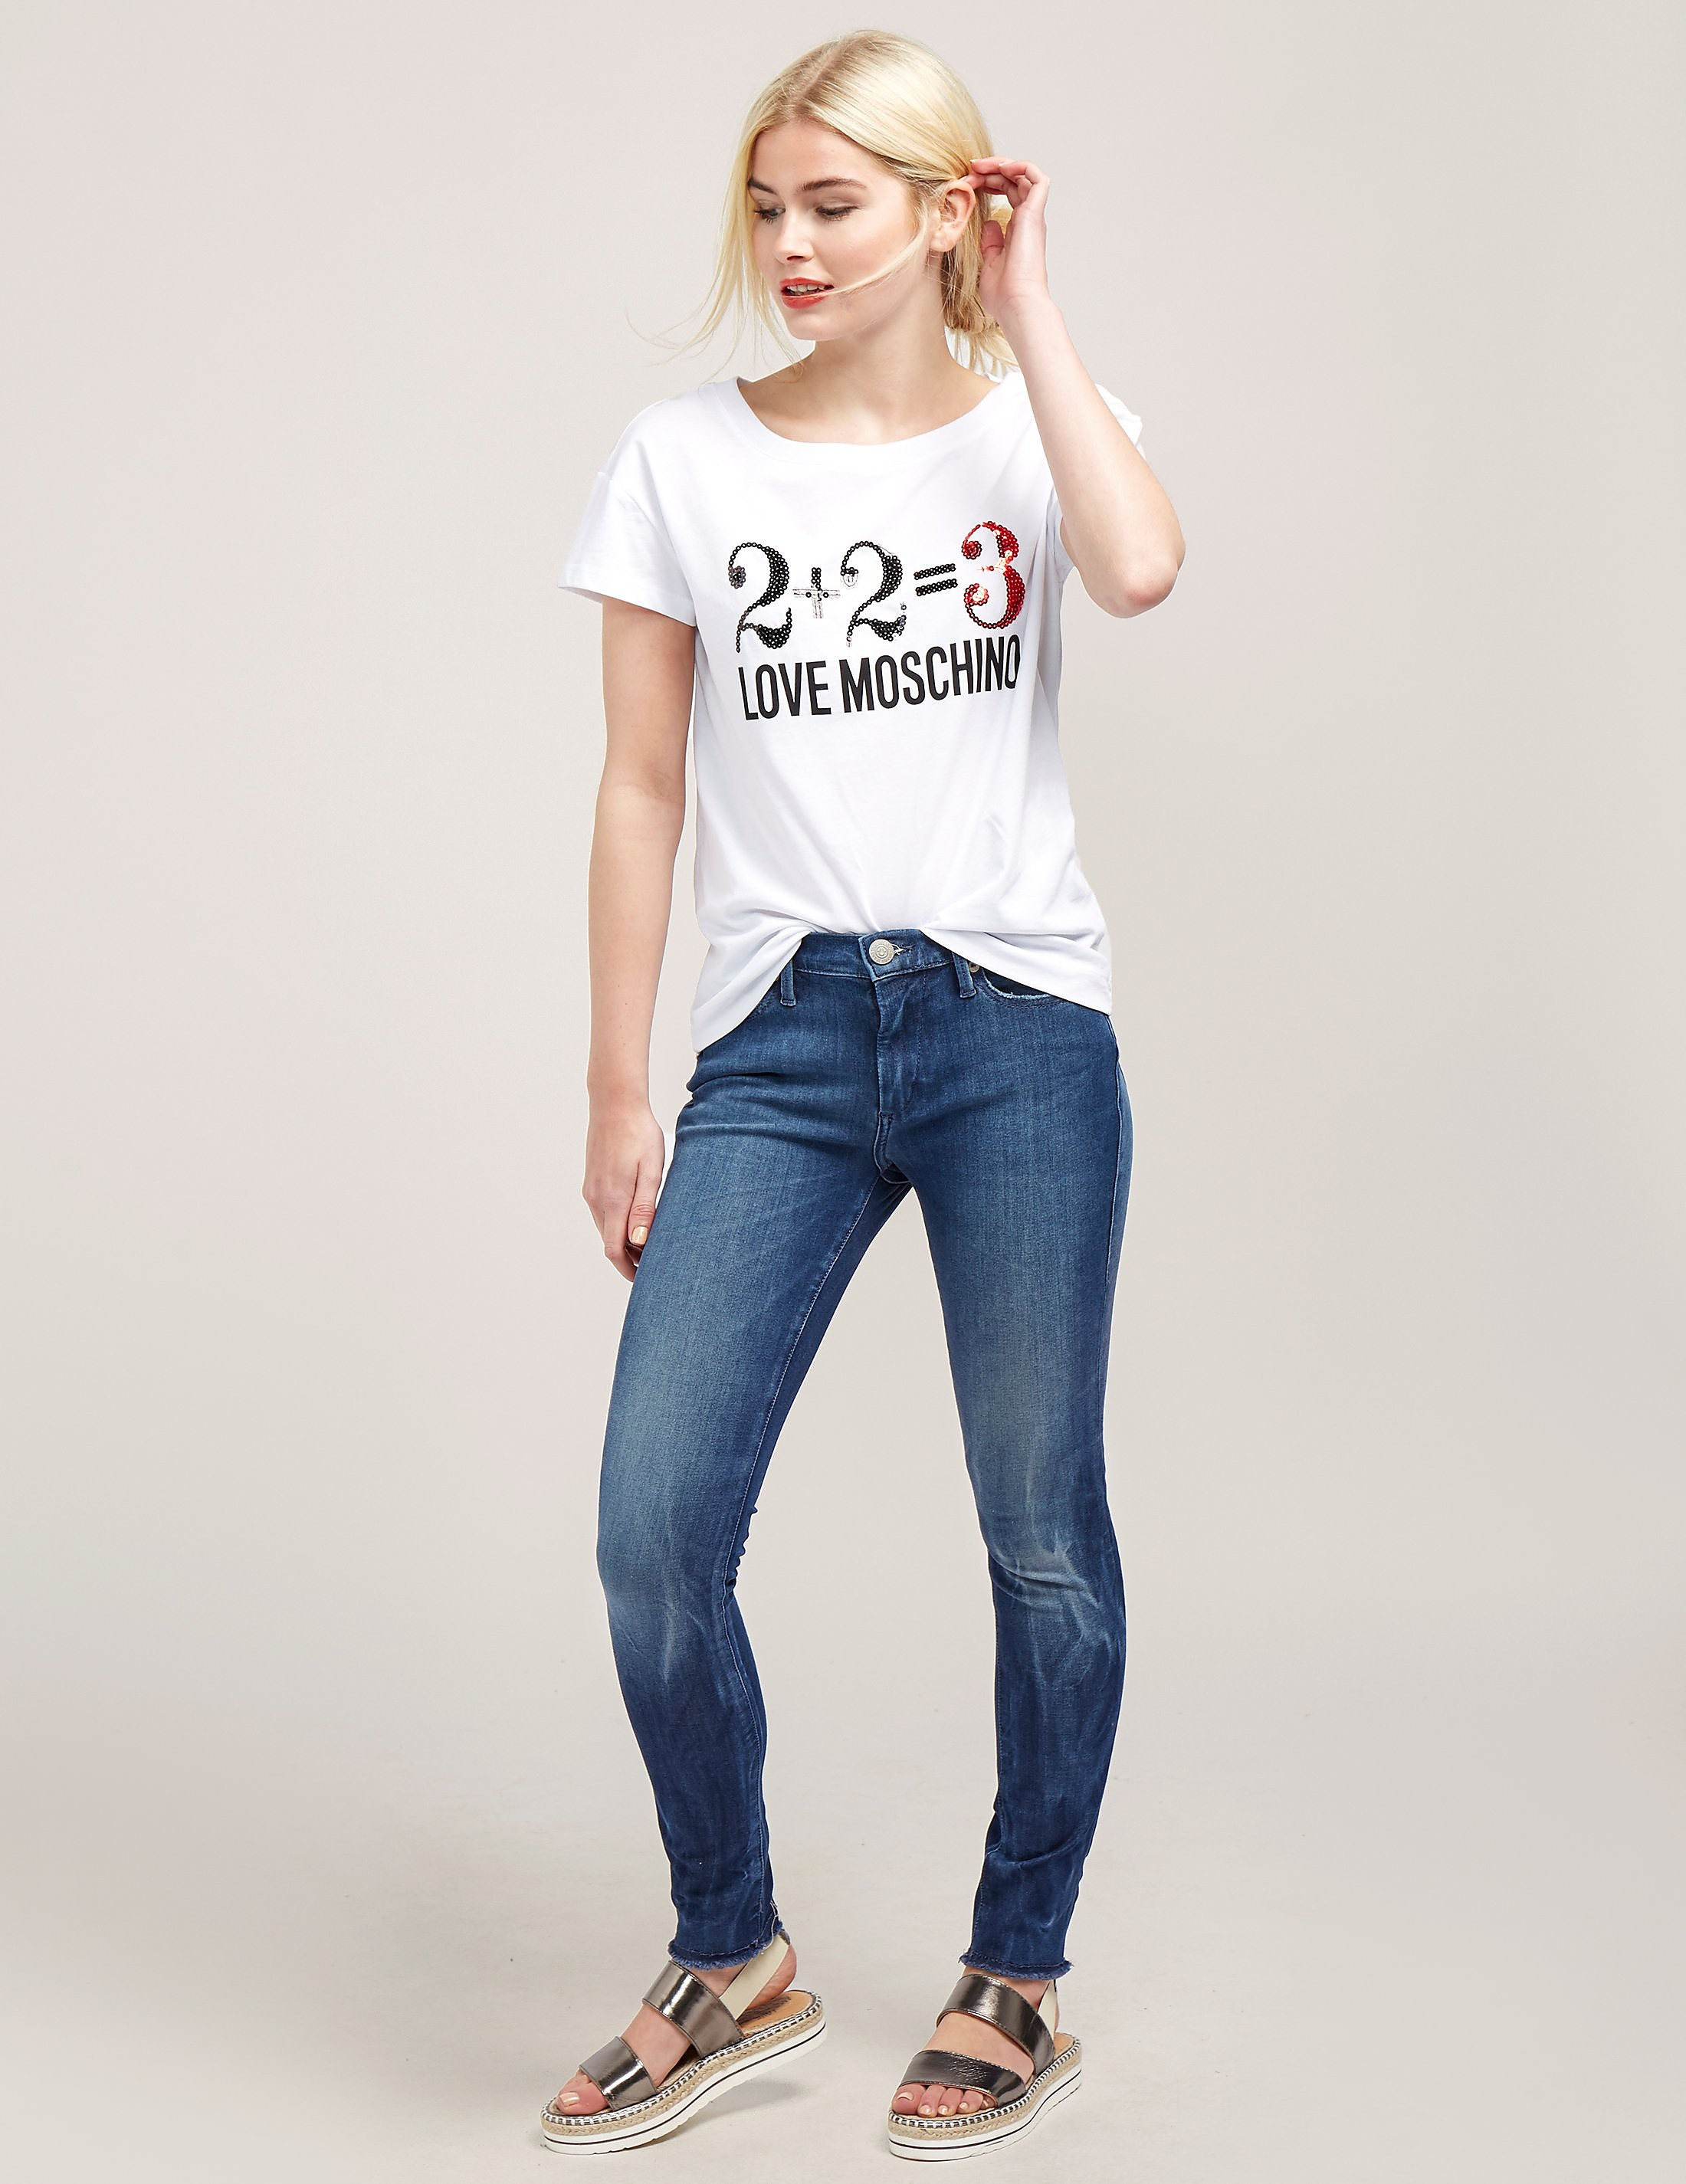 Love Moschino 2+2 Short Sleeve T-Shirt